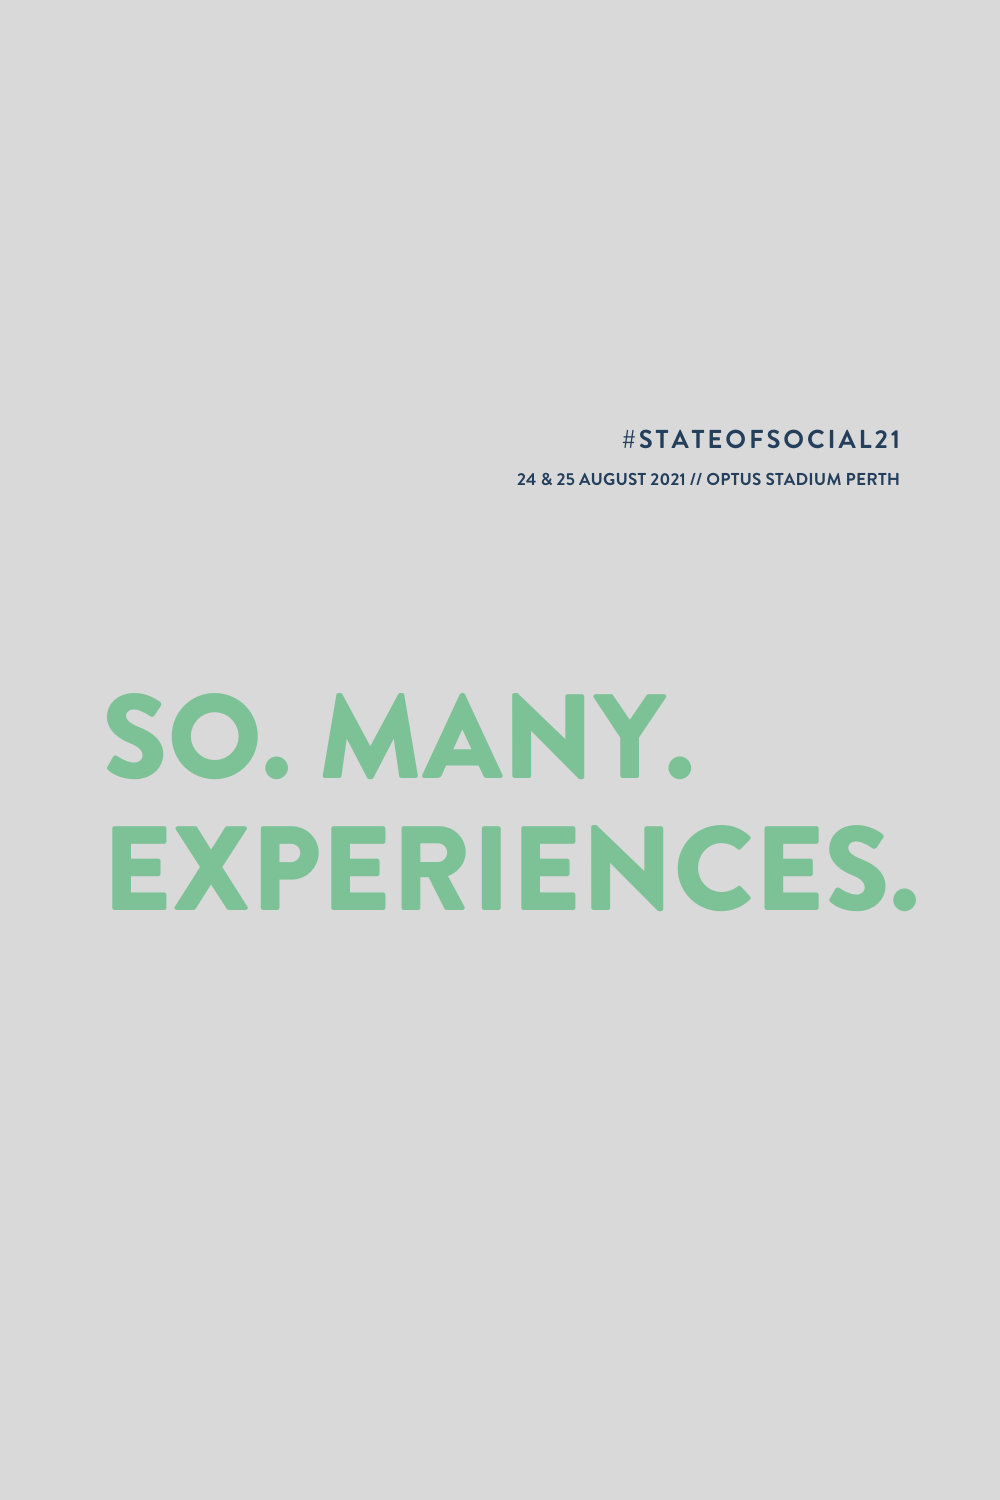 #StateofSocial21 Gallery